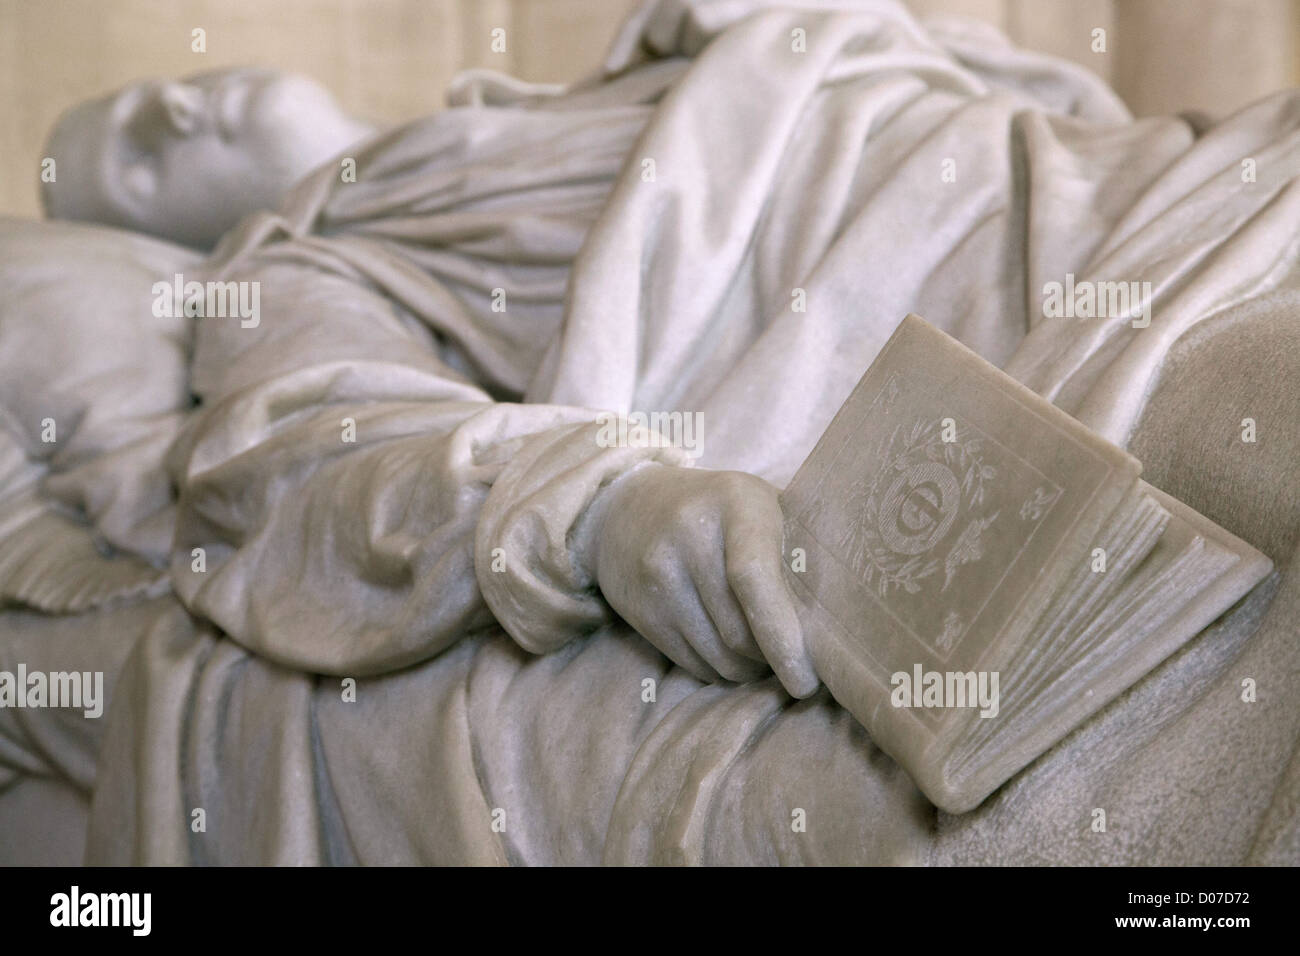 FERDINAND D'ORLEANS (1859-1873) ANOTHER GREAT GRANDSON KING LOUIS PHILIPPE RECUMBENT STATUE AIME MILLET ROYAL - Stock Image